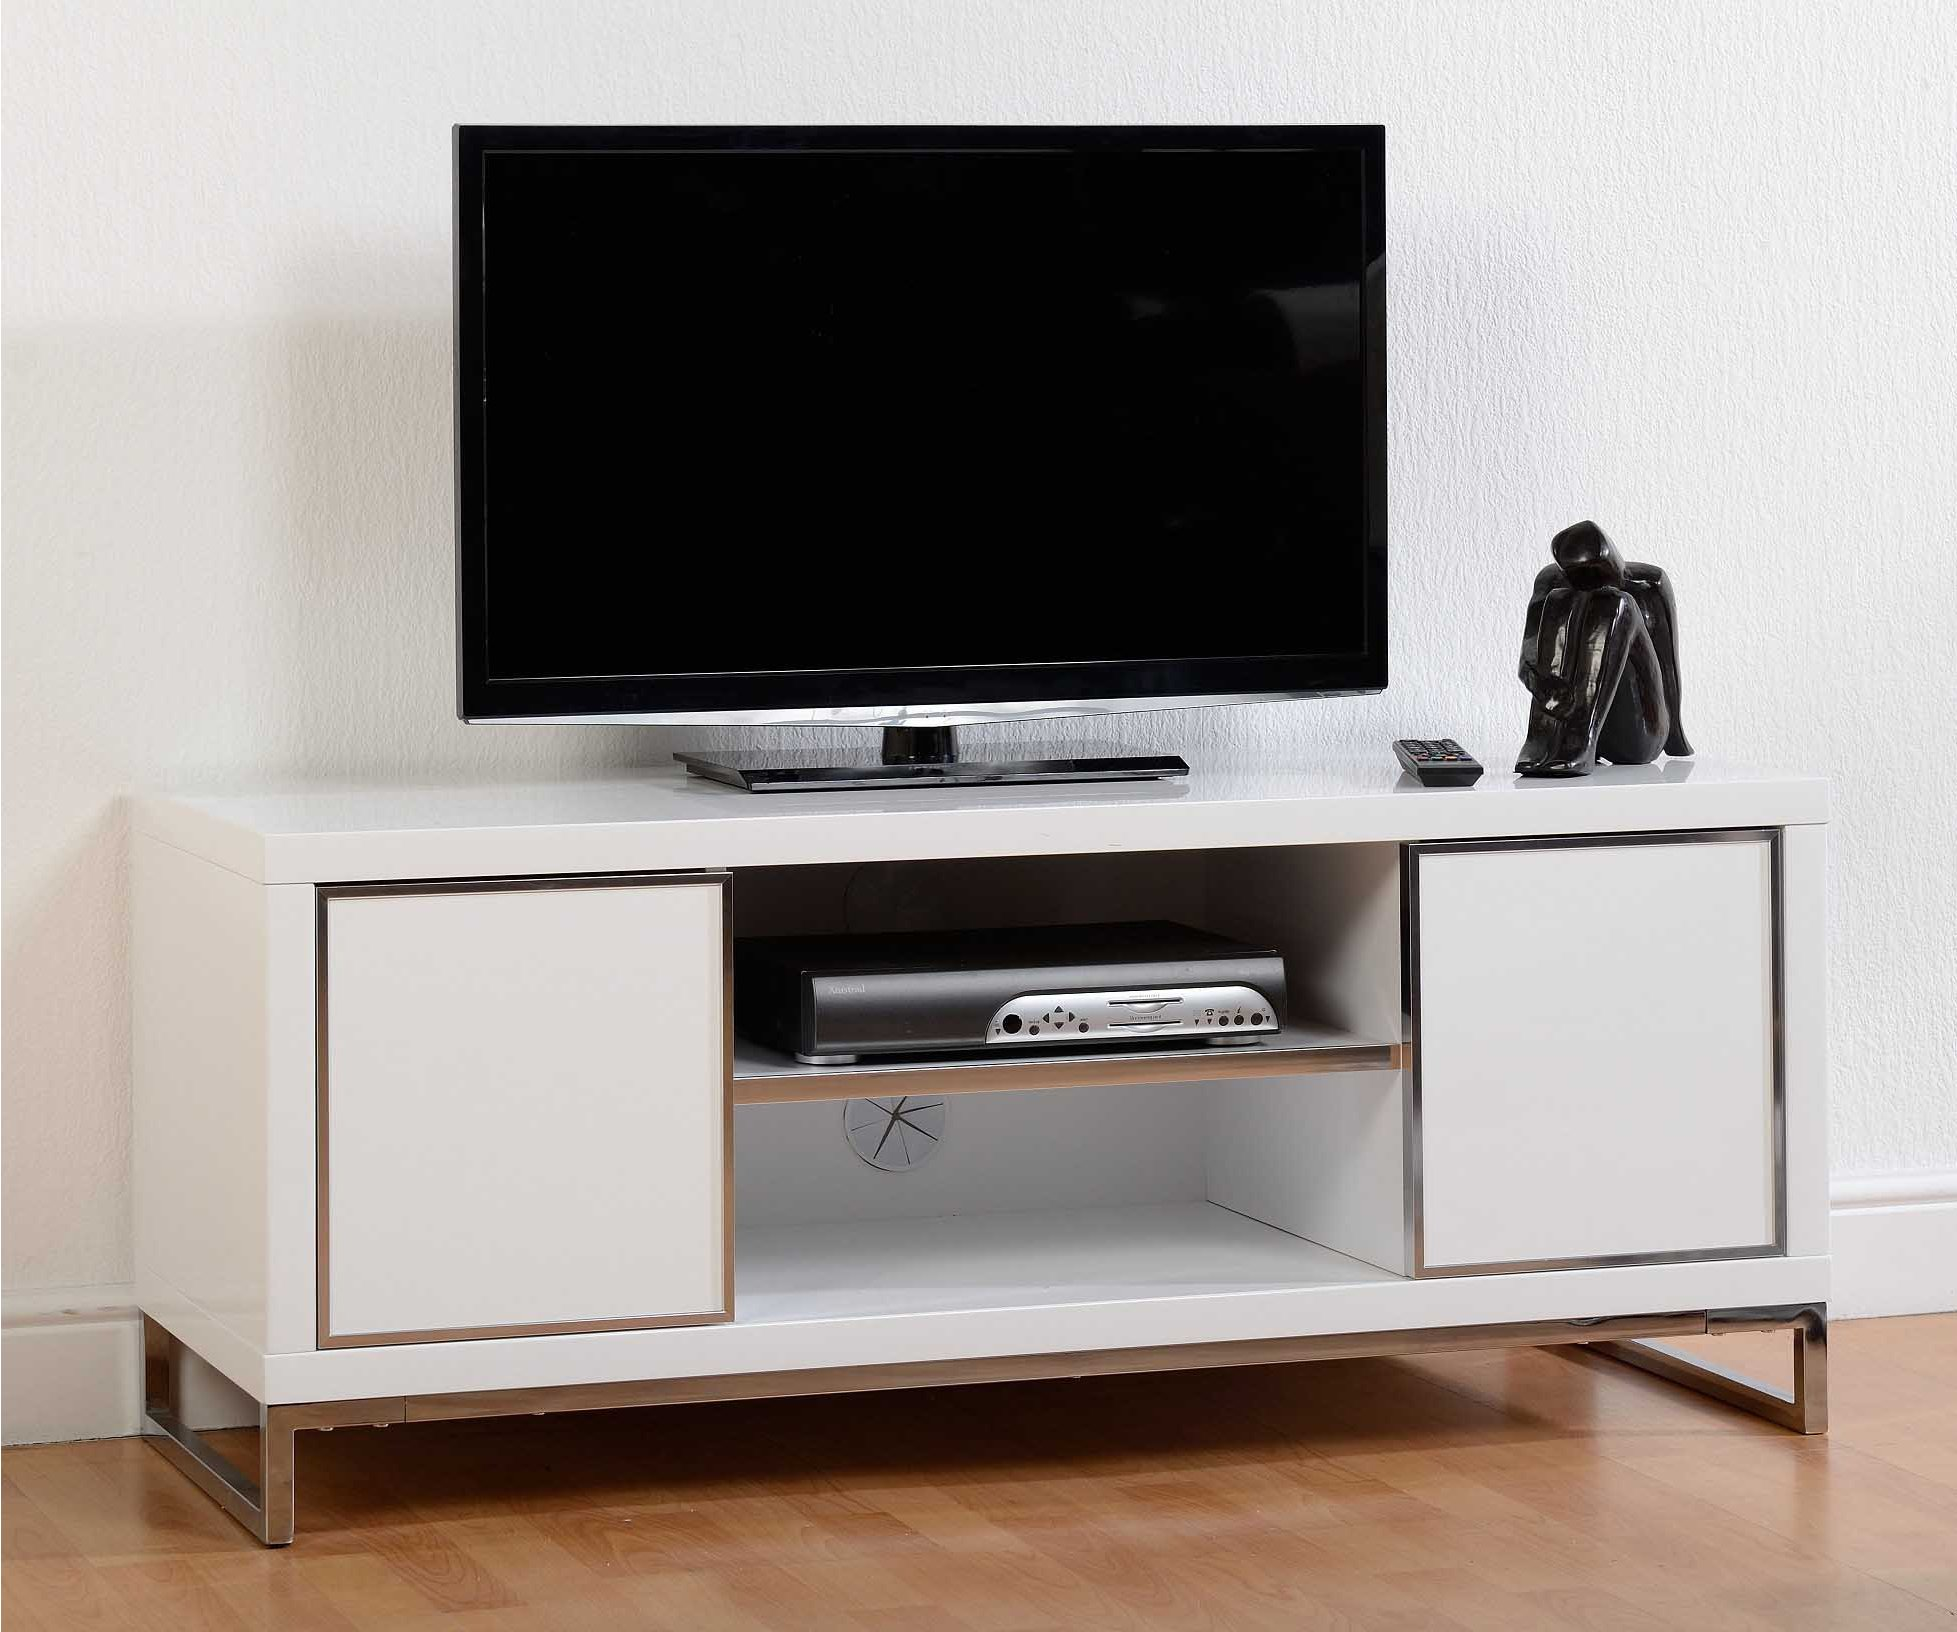 Valufurniture charisma white tv unit tv stands for White plasma tv stands